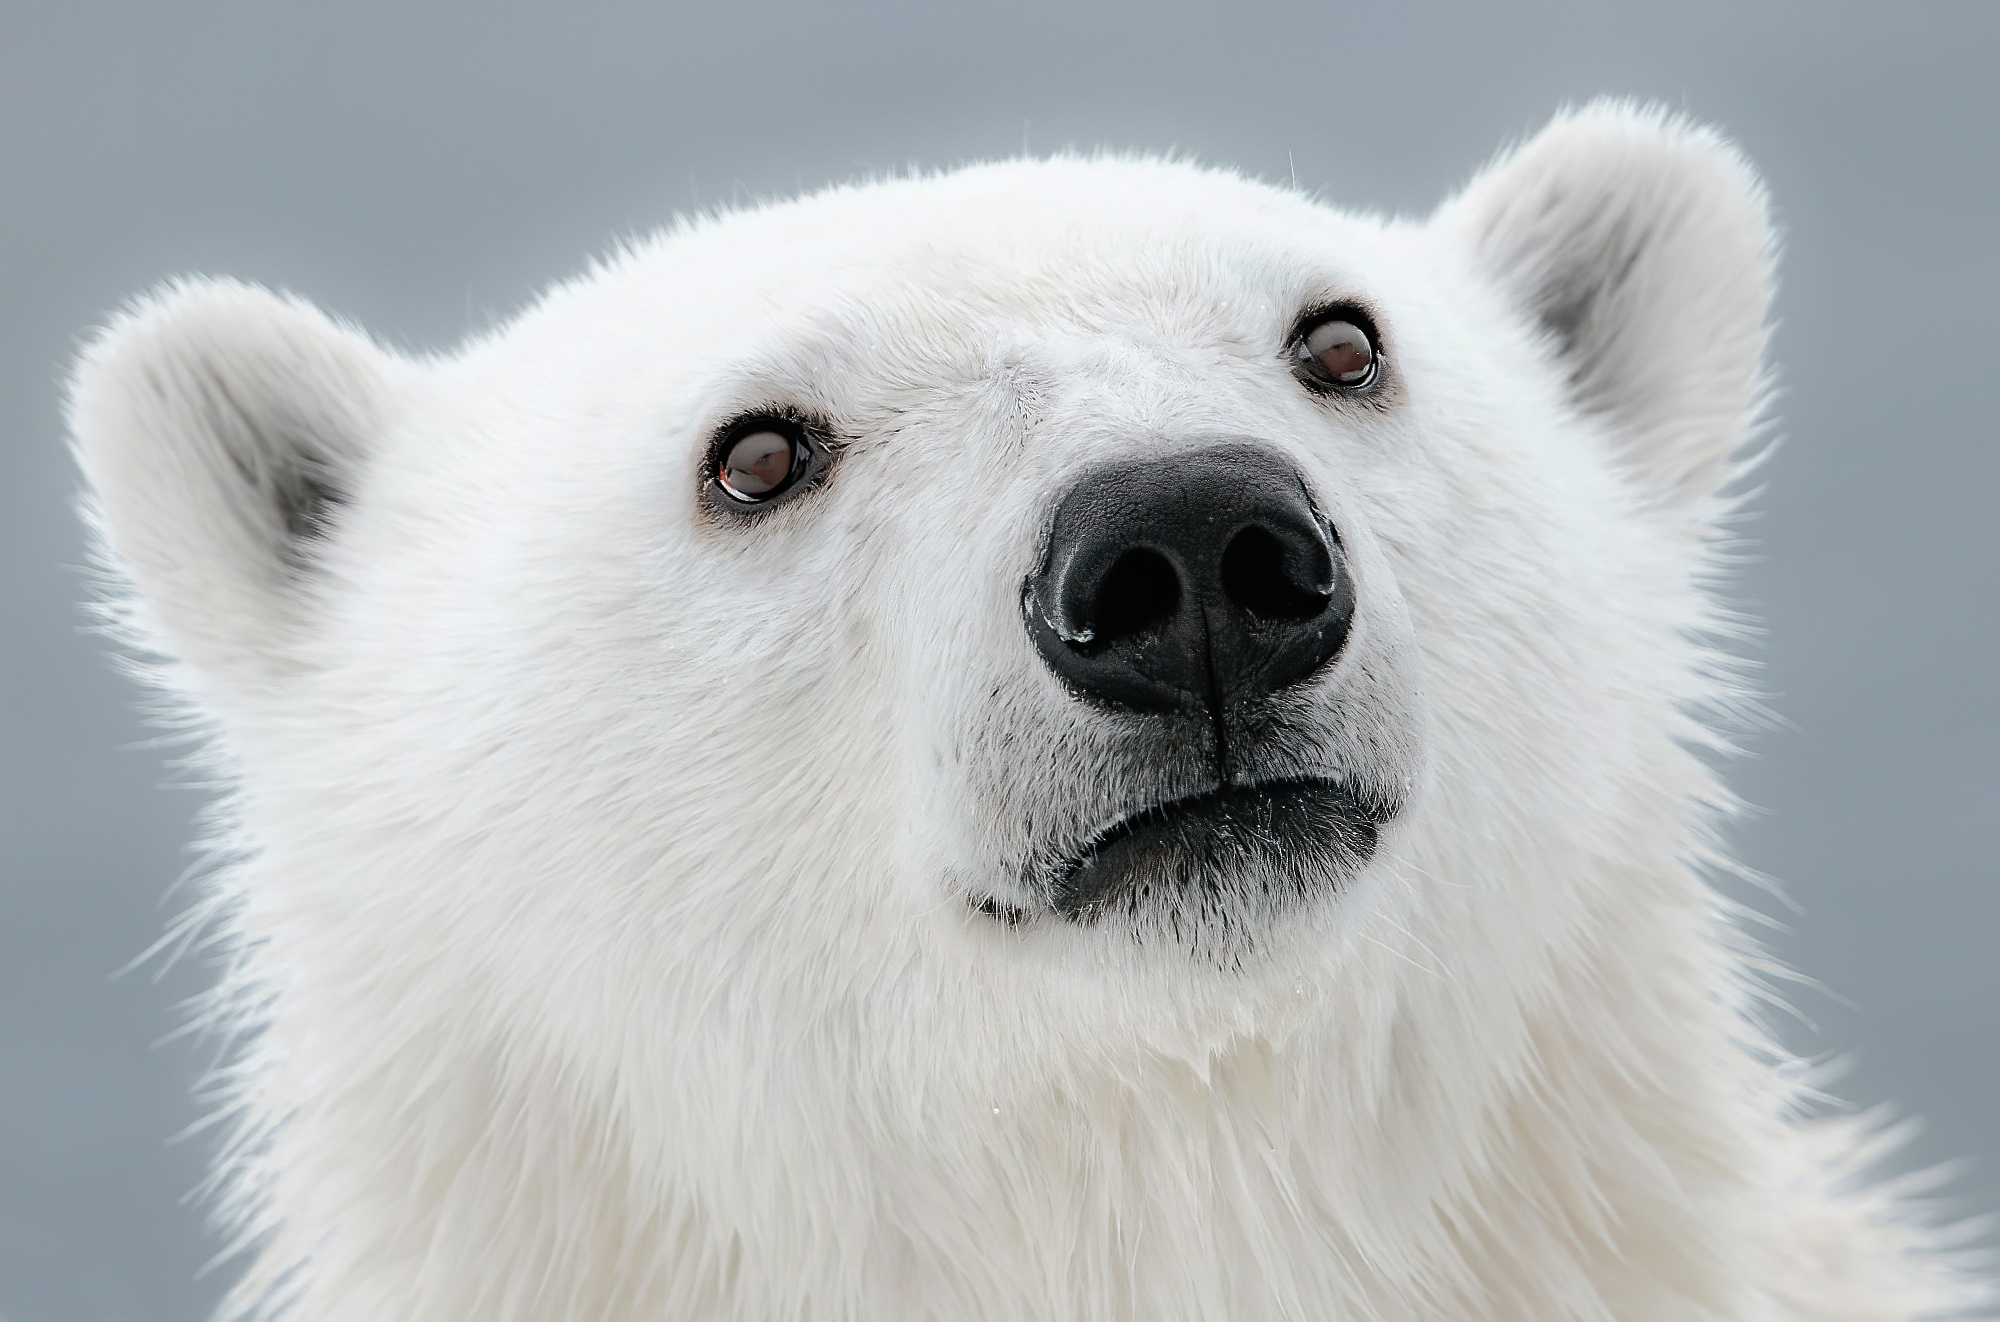 Arctic Wanderers: 22 incredible photos of polar bears